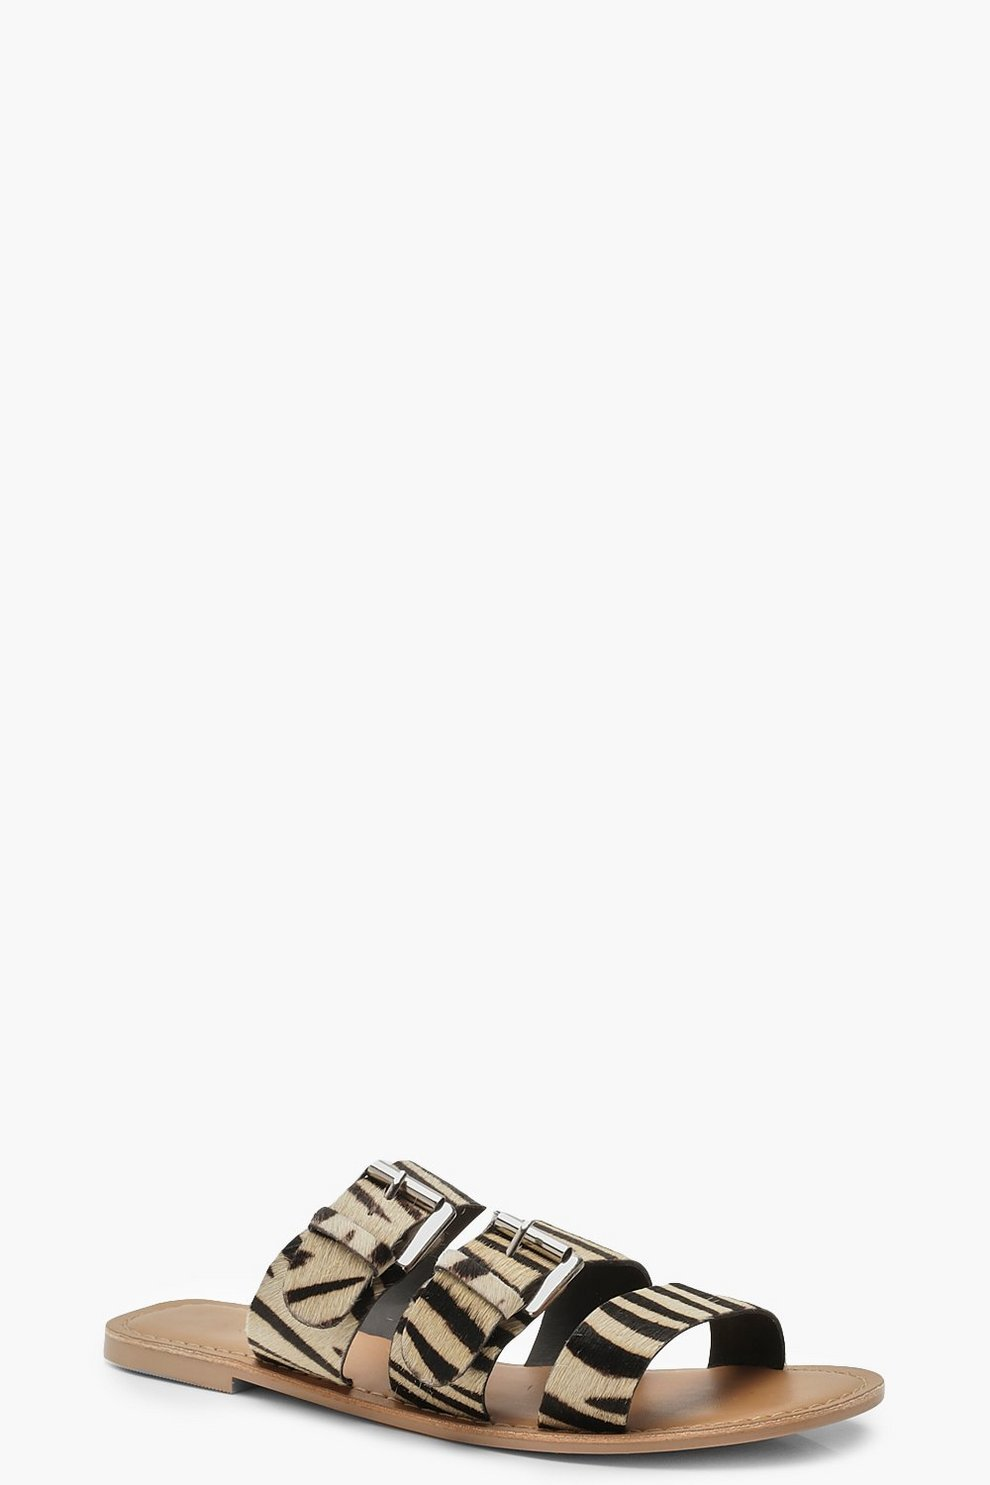 save off pretty nice best supplier Pony Leather Zebra Buckle Sliders | Boohoo